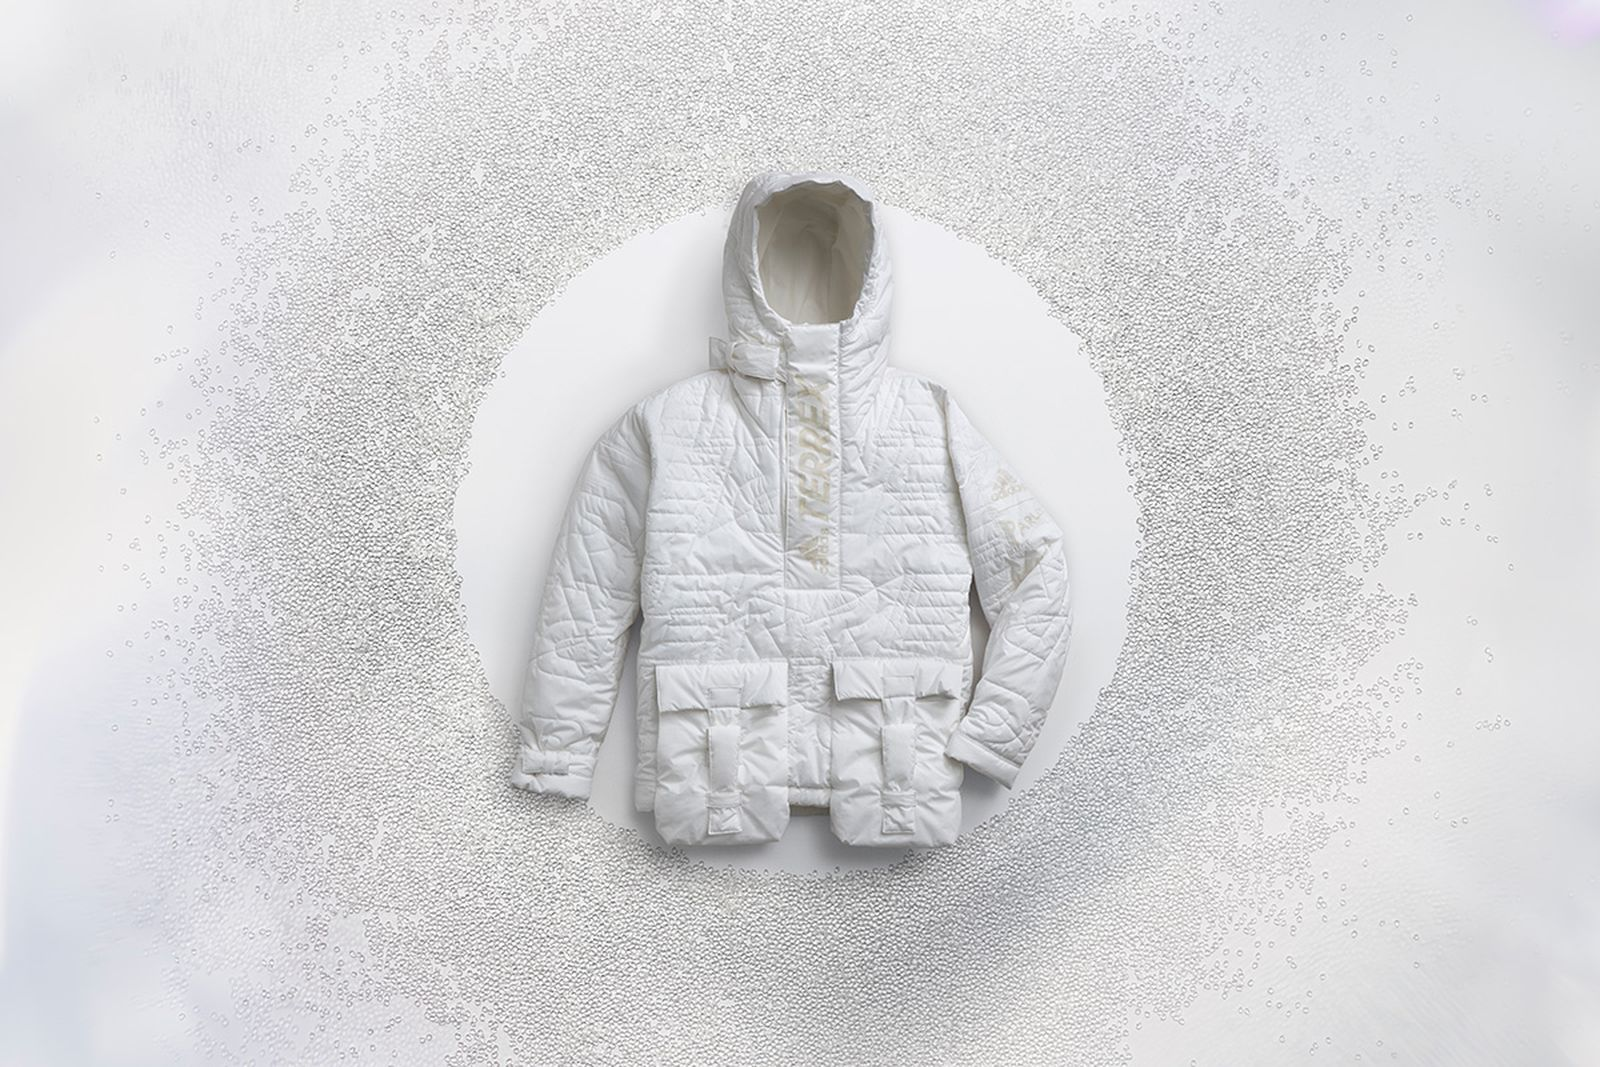 adidas-futurecraft-loop-anorak-will-change-the-way-you-look-at-jackets-05